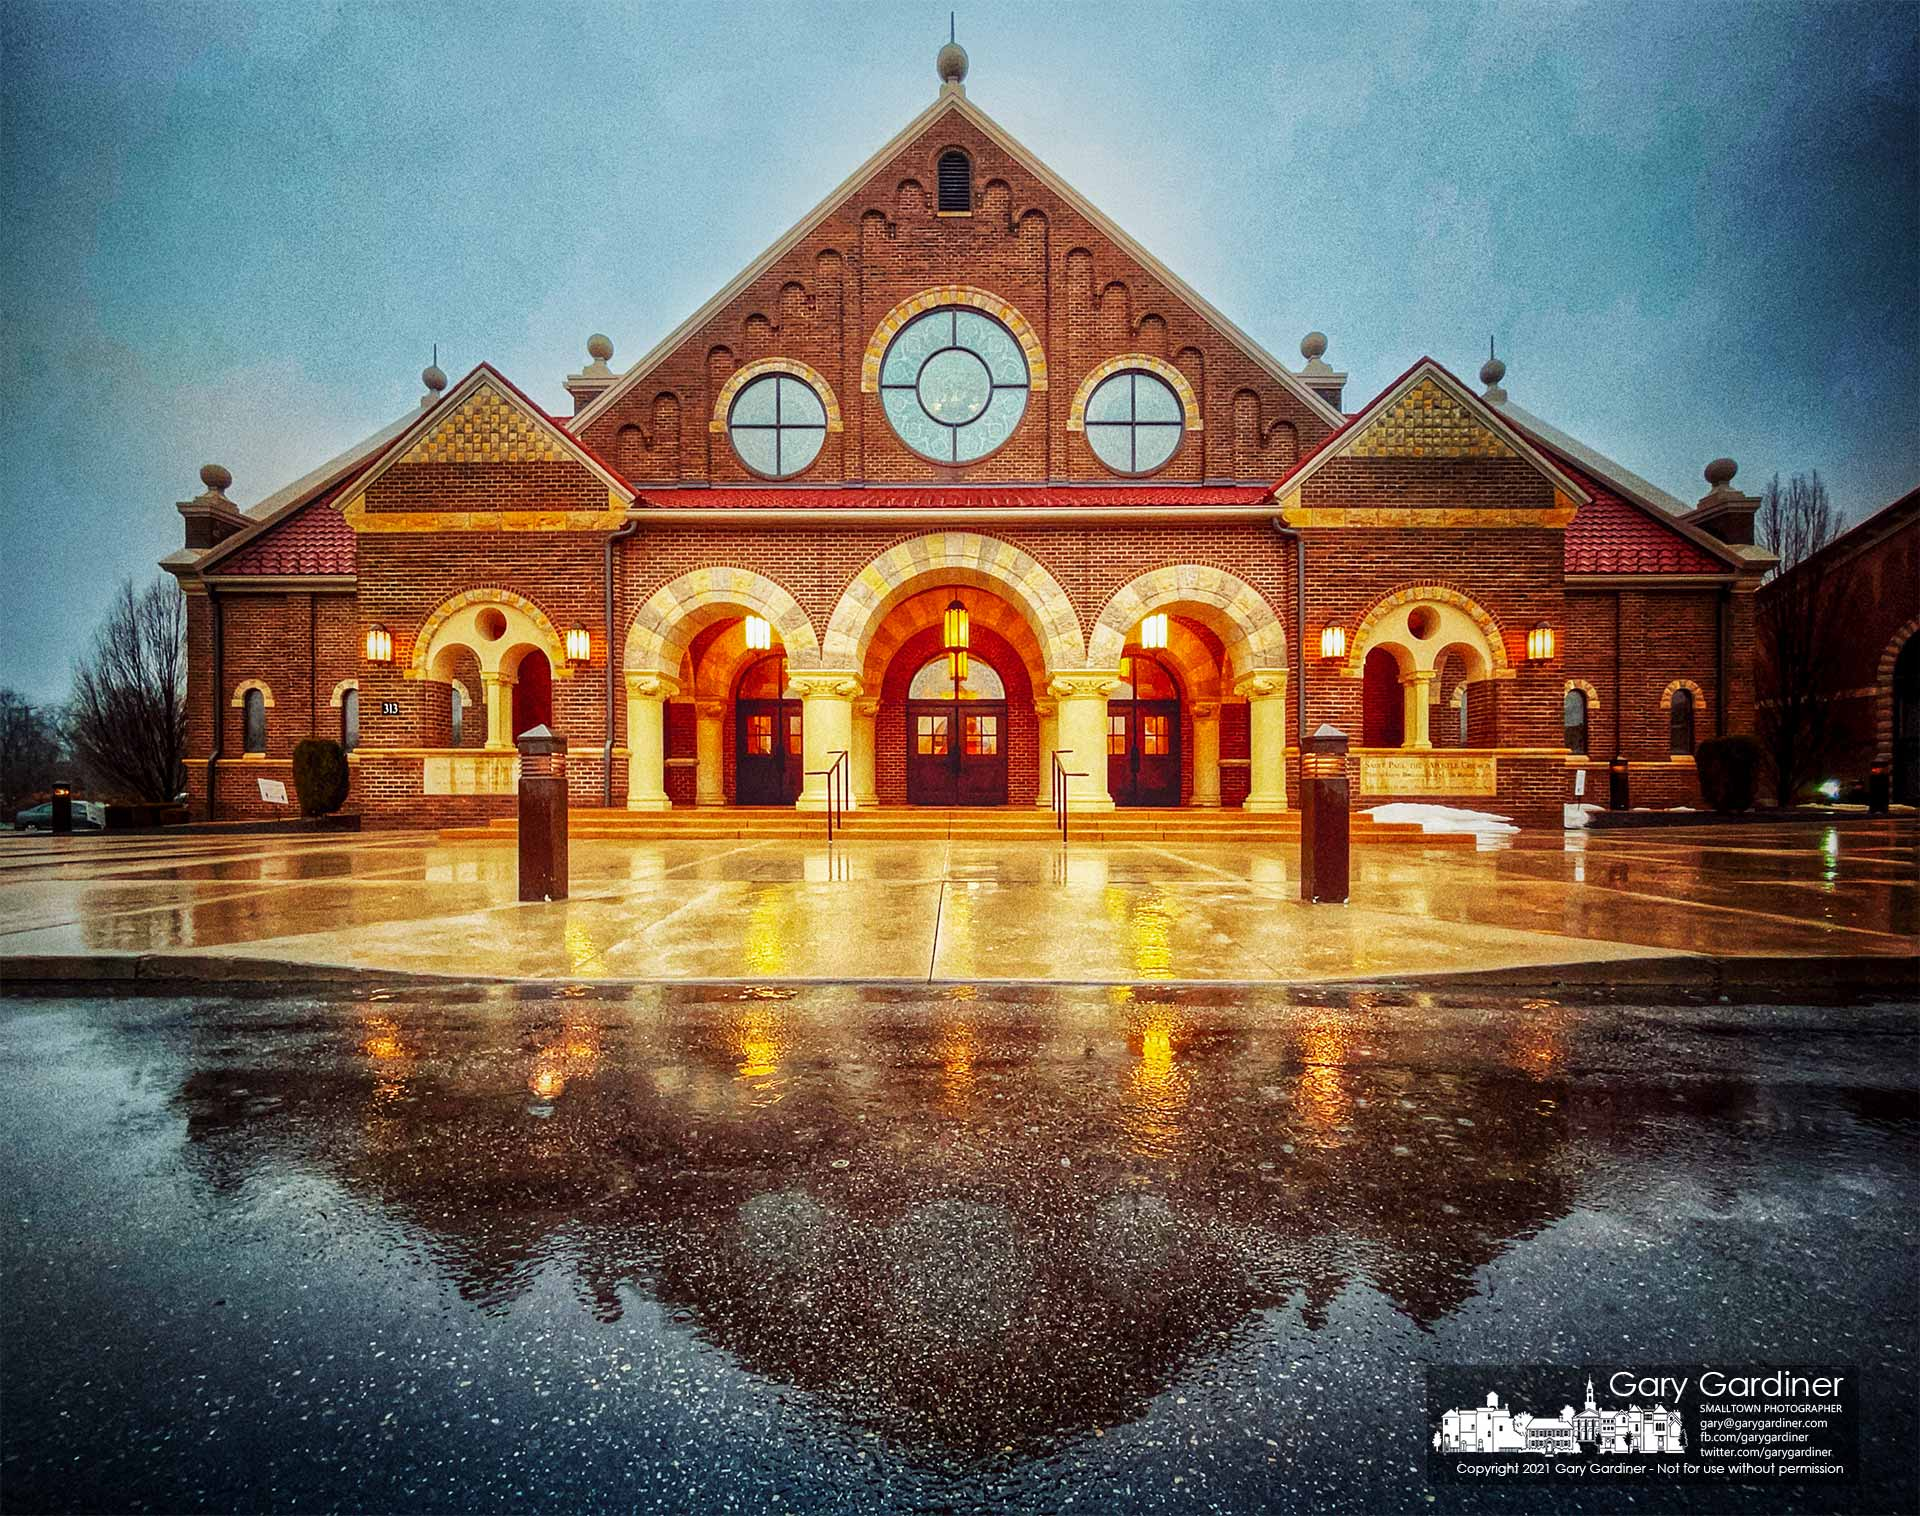 St. Paul the Apostle Catholic Church is reflected in the entrance to the church after an overnight rainstorm. My Final Photo for Feb. 28, 2021.